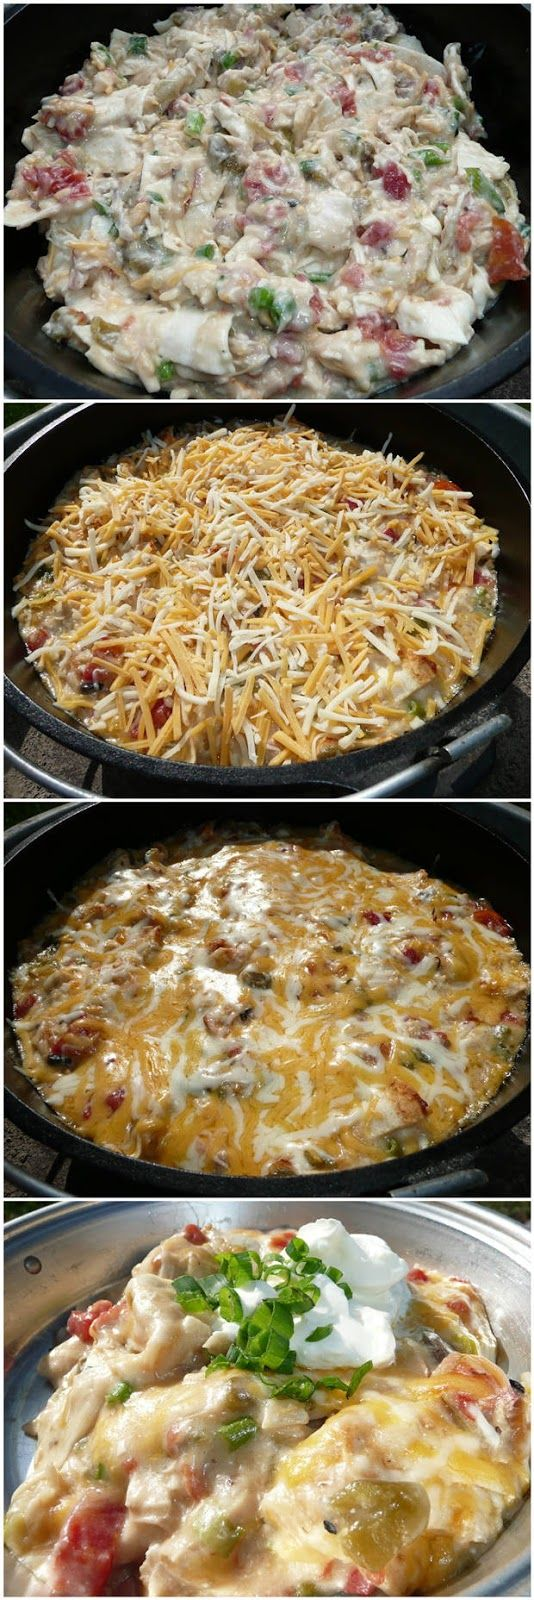 cookglee recipe pictures: Dude Ranch Chicken